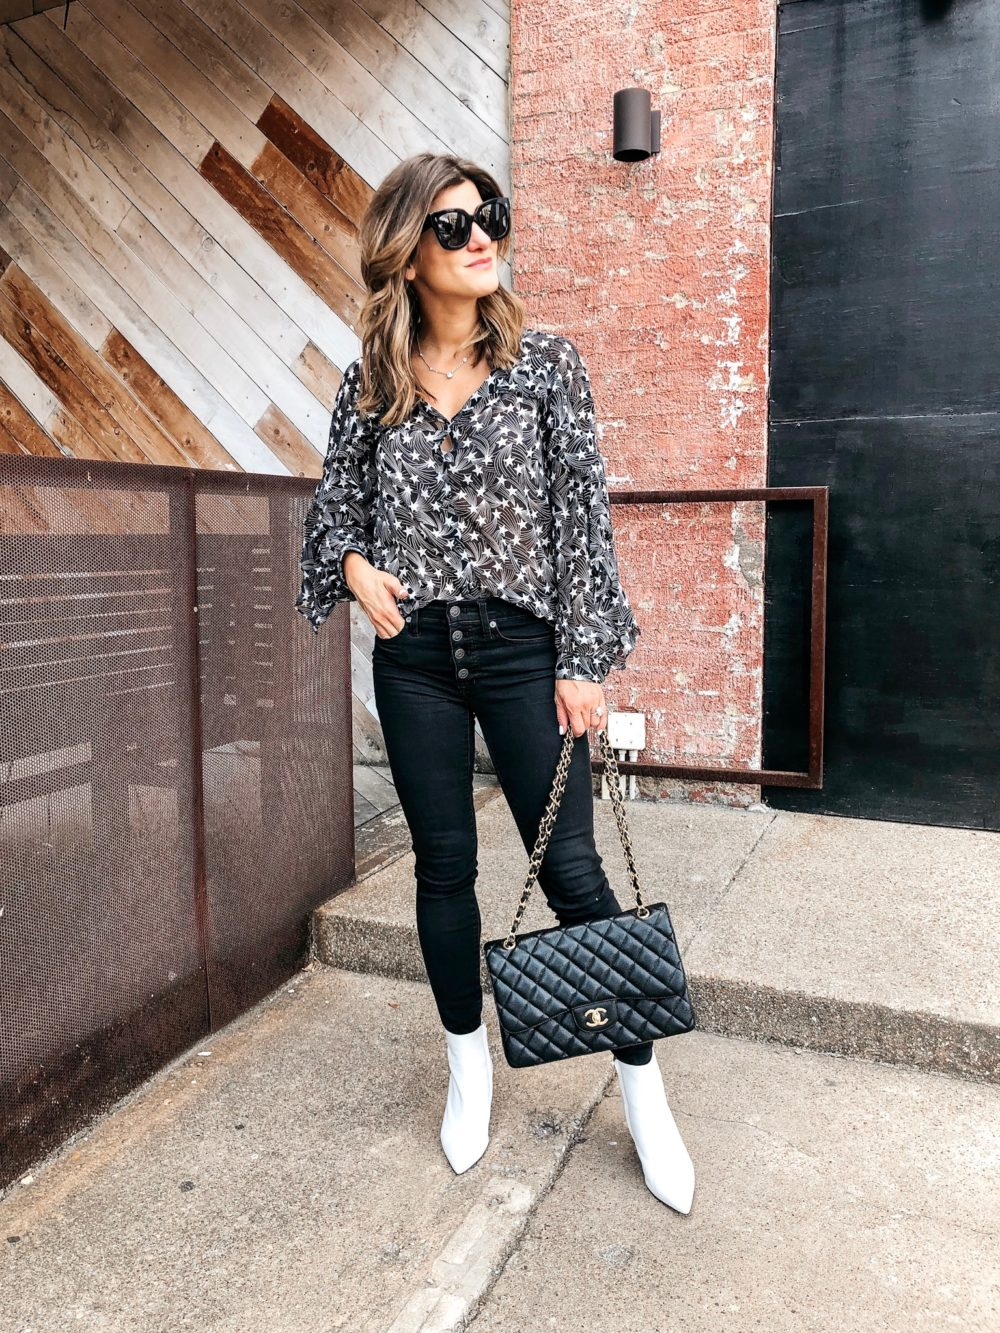 transitional fall outfit on brighton keller star print top with black jeans, white booties